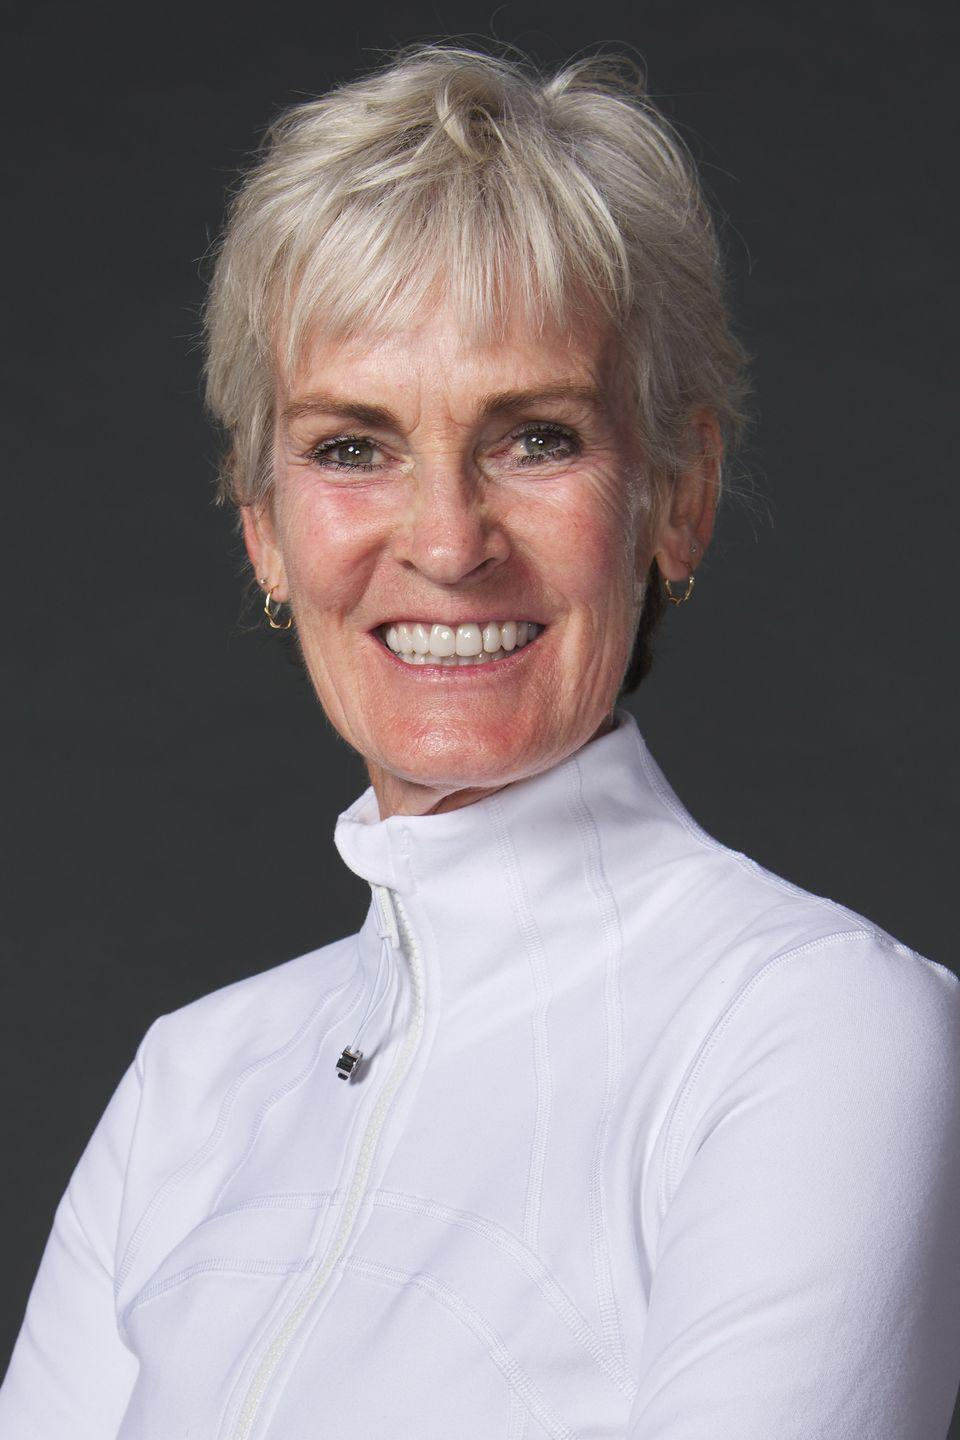 "<p>Judy Murray, the tennis coach and mother of British tennis champions Andy and Jamie Murray, reanimated the conversation around face lifts when she announced her own impressive results.</p><p>The 61-year-old went to <a href=""https://www.synergygiffnock.co.uk/"" rel=""nofollow noopener"" target=""_blank"" data-ylk=""slk:Dr Todd's Synergy Clinic in Glasgow"" class=""link rapid-noclick-resp"">Dr Todd's Synergy Clinic in Glasgow</a> and received a 'non-surgical' face lift involving micro-needling and radio frequency, demonstrating that full surgery no longer has to be the only option. </p><p>""Jamie and Andy started to call me turkey neck ... in a loving and jokey way, and that may have had something to do with me thinking I really should do something about this,"" she told the <a href=""https://www.dailymail.co.uk/femail/article-9259495/Judy-Murray-reveals-results-4-500-non-surgical-facelift-makes-look-10-years-younger.html"" rel=""nofollow noopener"" target=""_blank"" data-ylk=""slk:Mail"" class=""link rapid-noclick-resp"">Mail</a>. ""I didn't tell them anything about the treatments I was having, but they noticed the difference.""</p>"